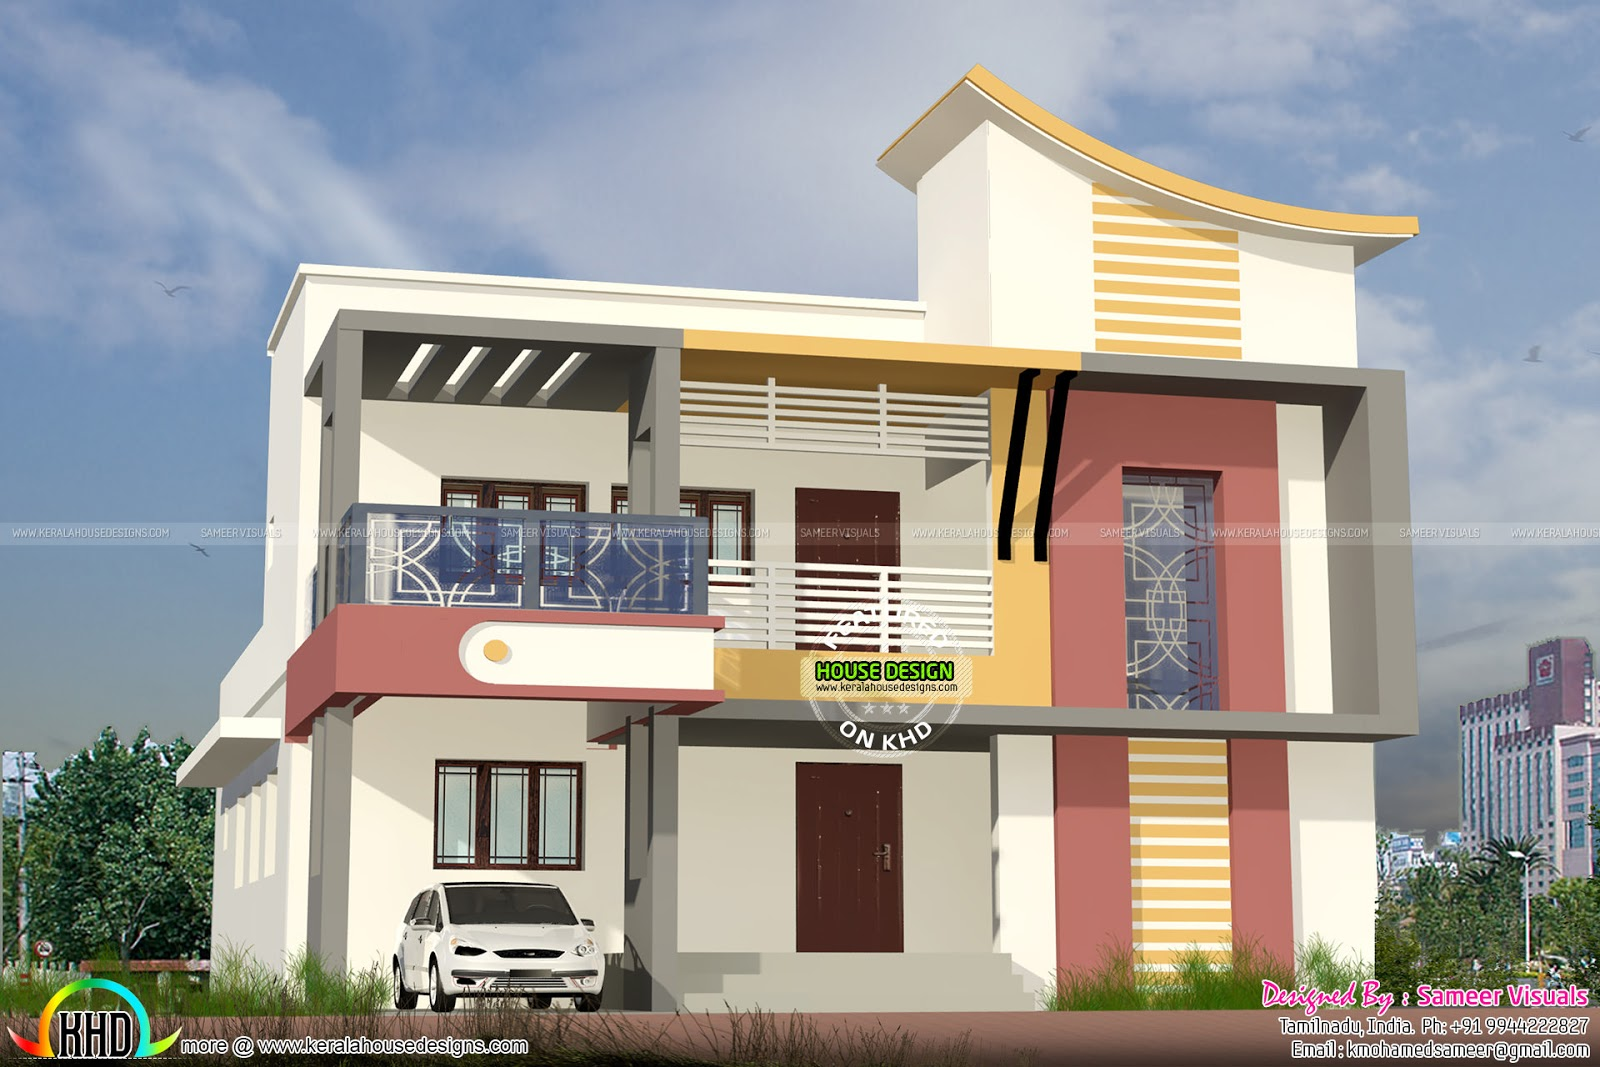 Model house plan in tamilnadu joy studio design gallery for Tamilnadu house designs photos